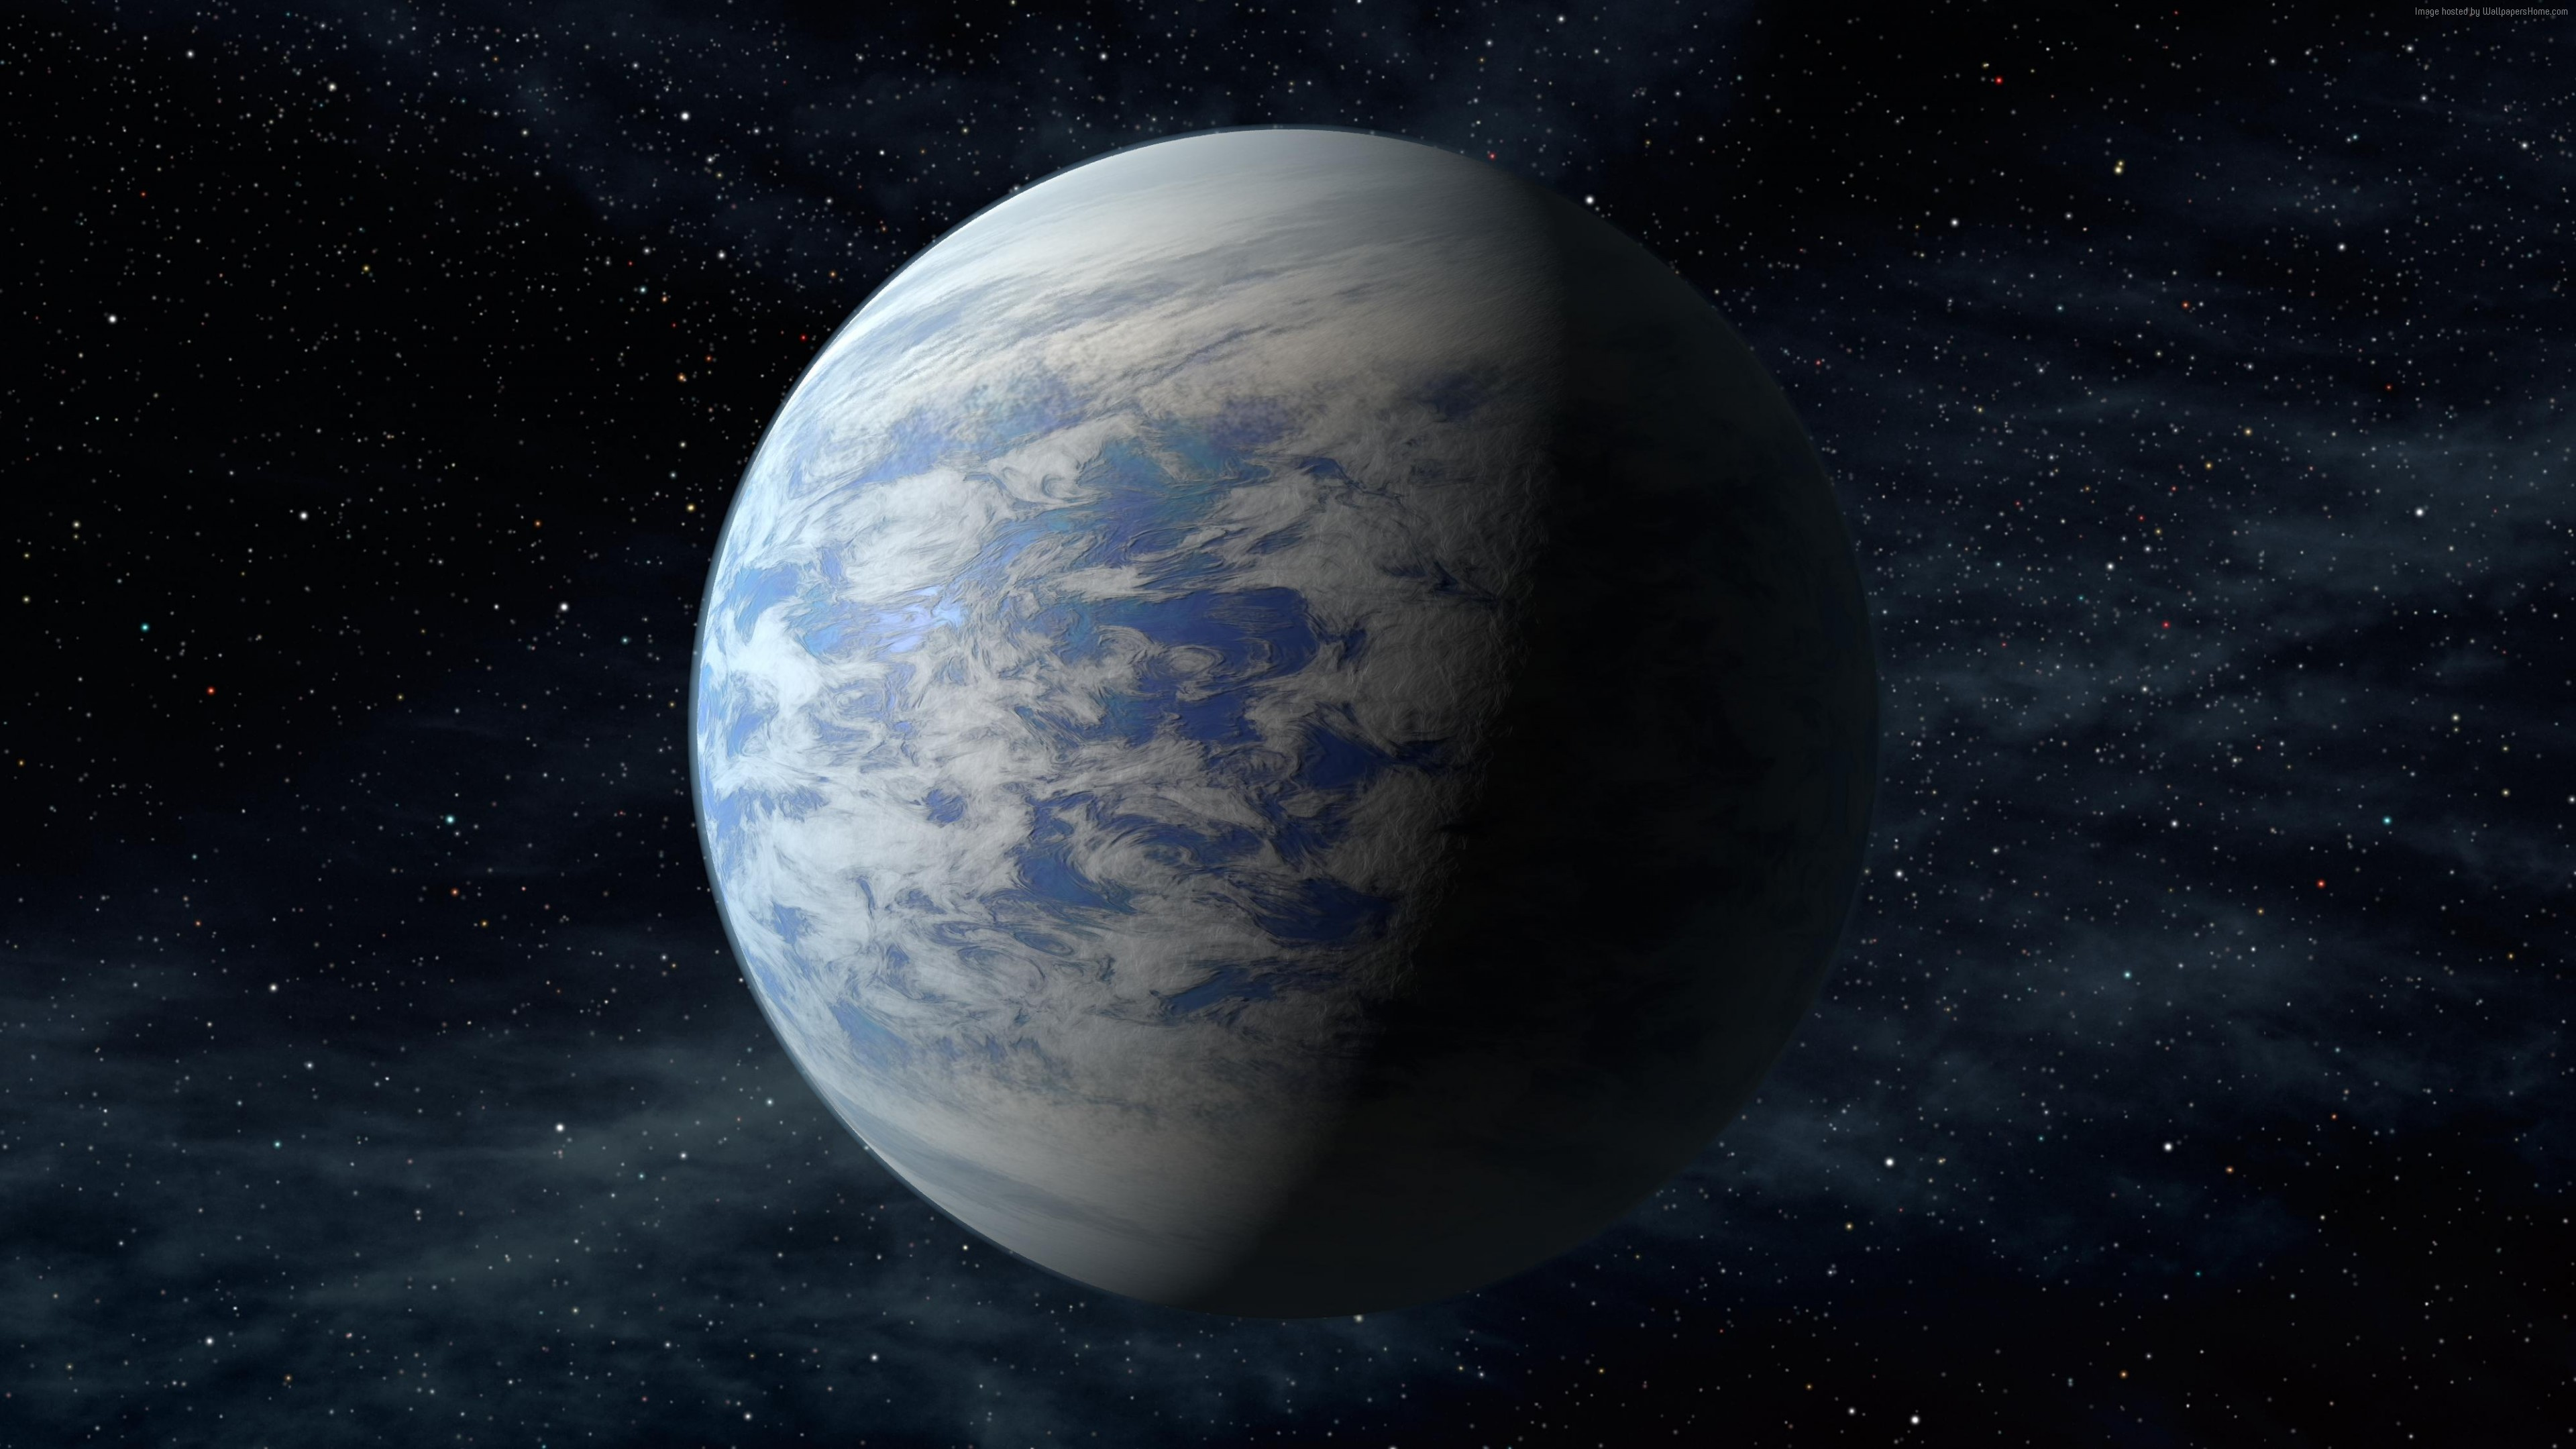 Wallpaper Kepler-452b, Exoplanet, Planet, space, stars, Space